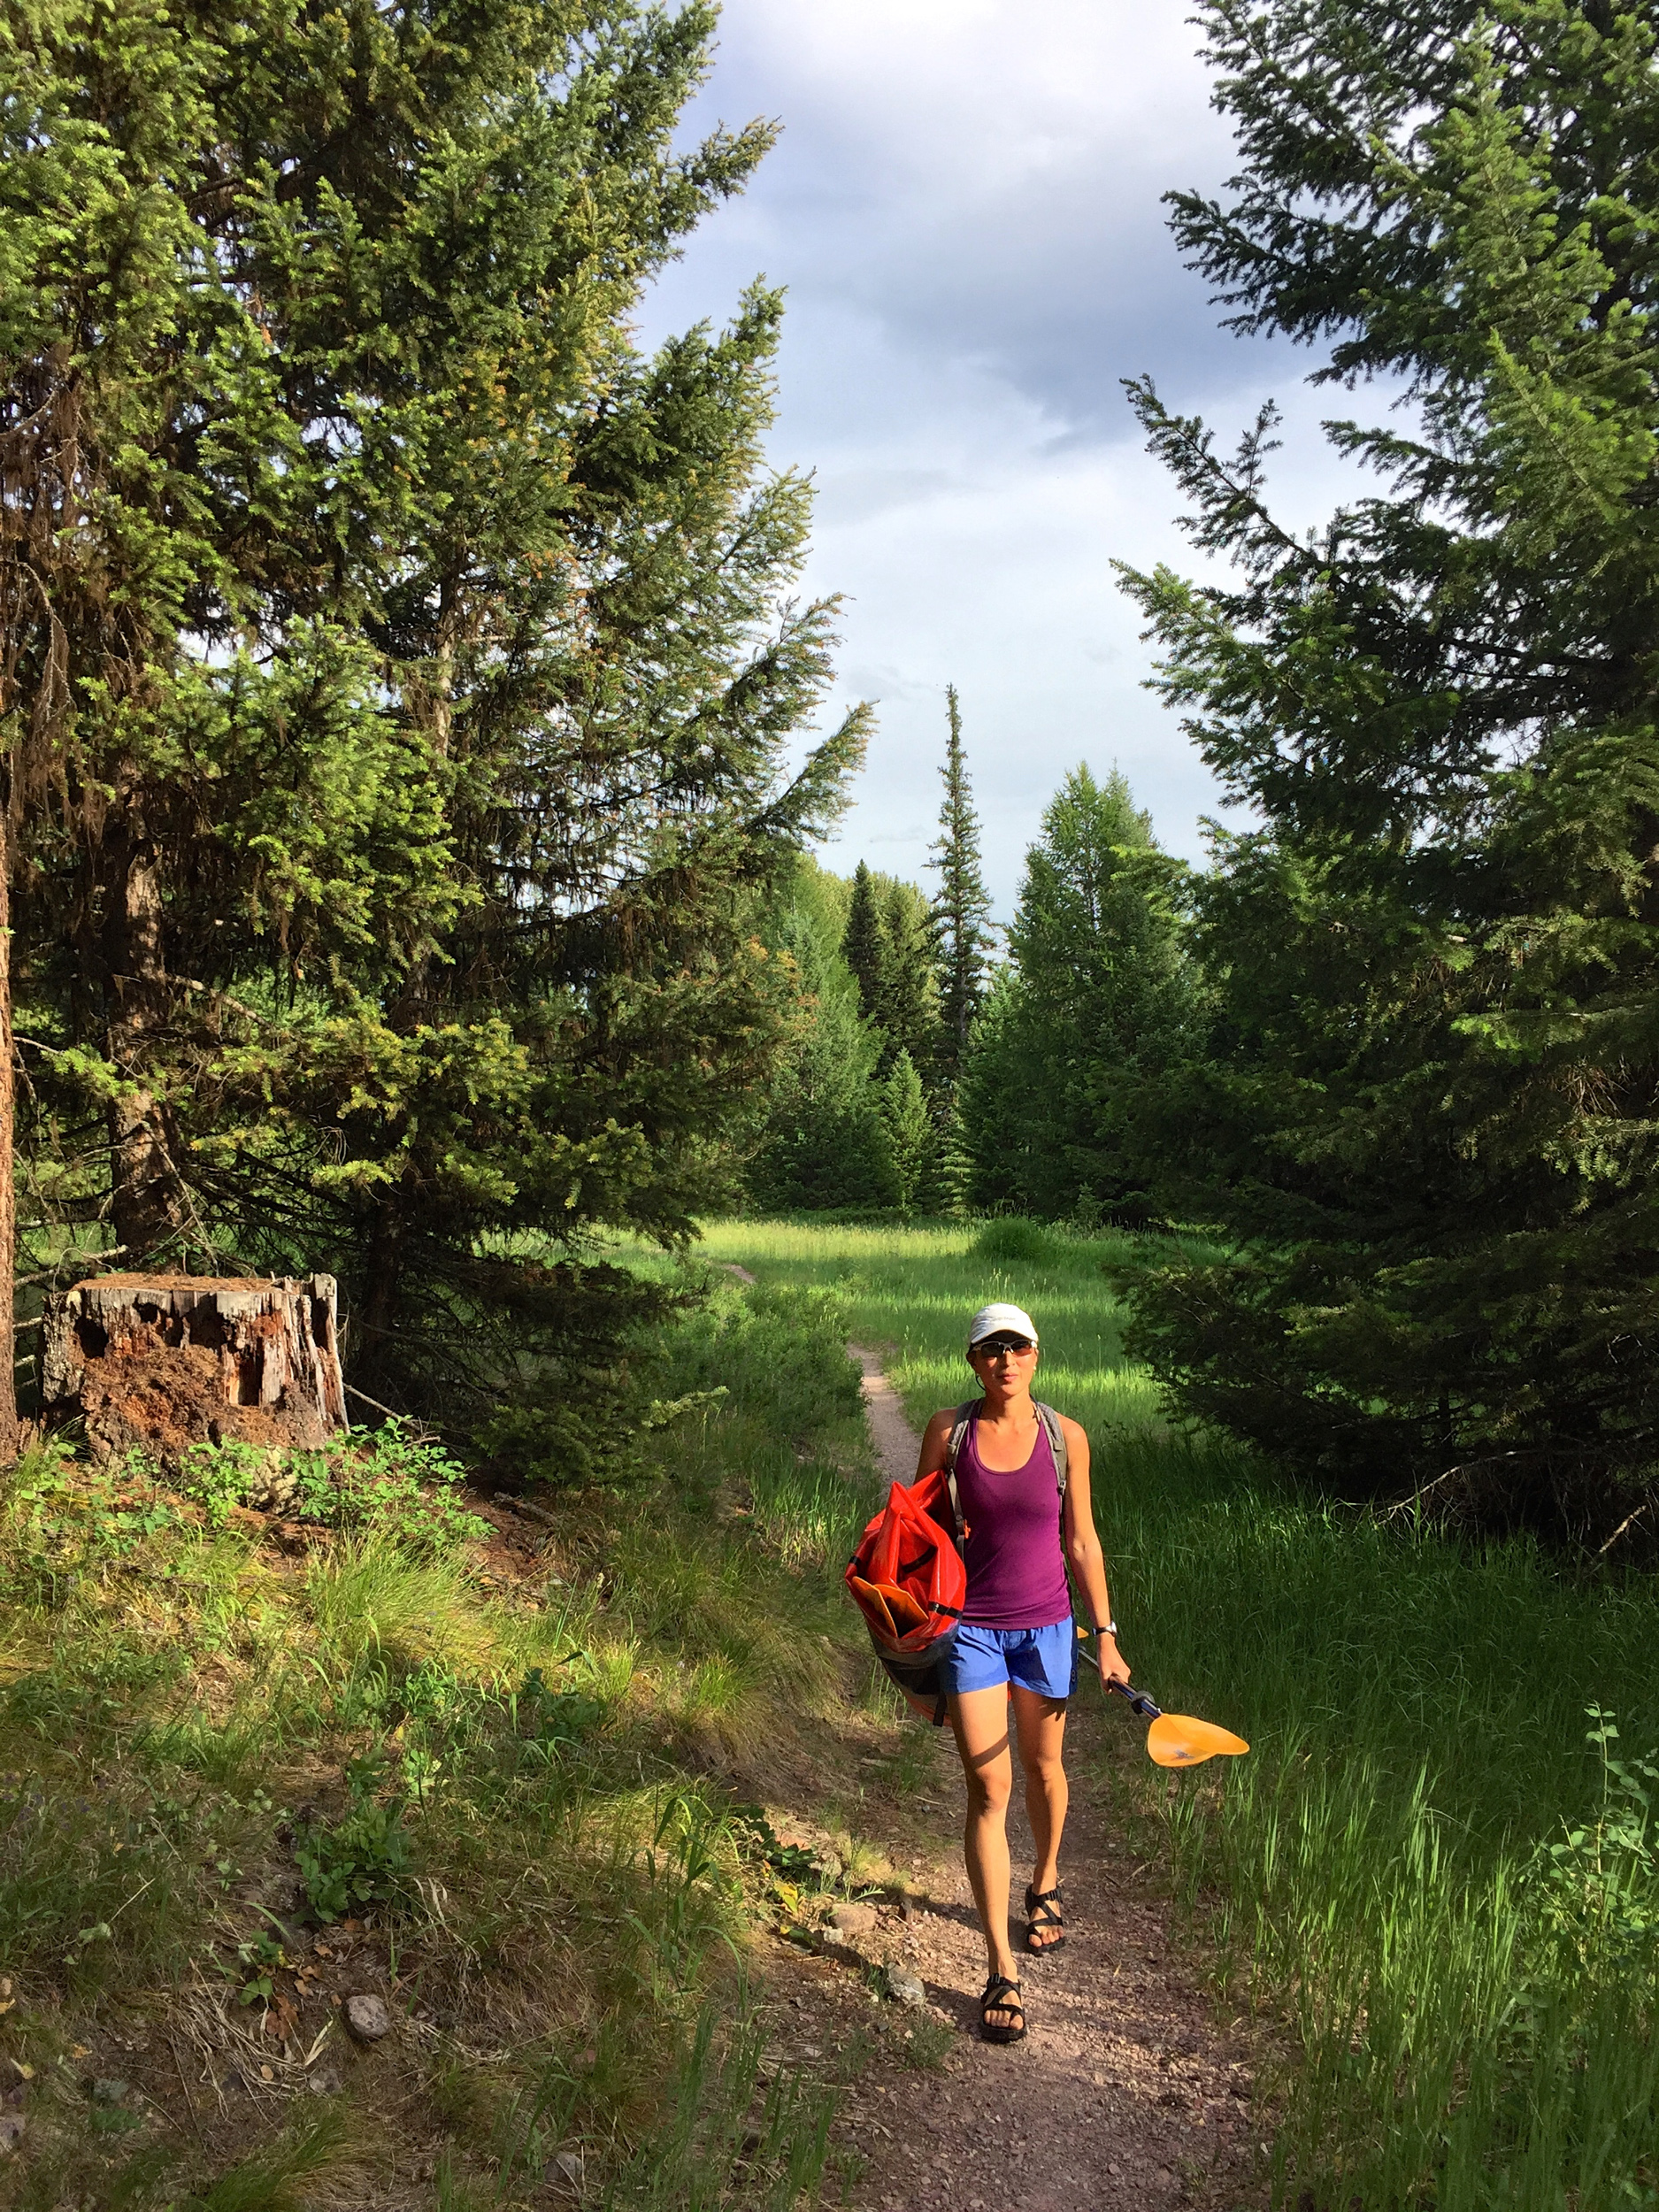 The start of our hike back to the car with the packraft in hand.